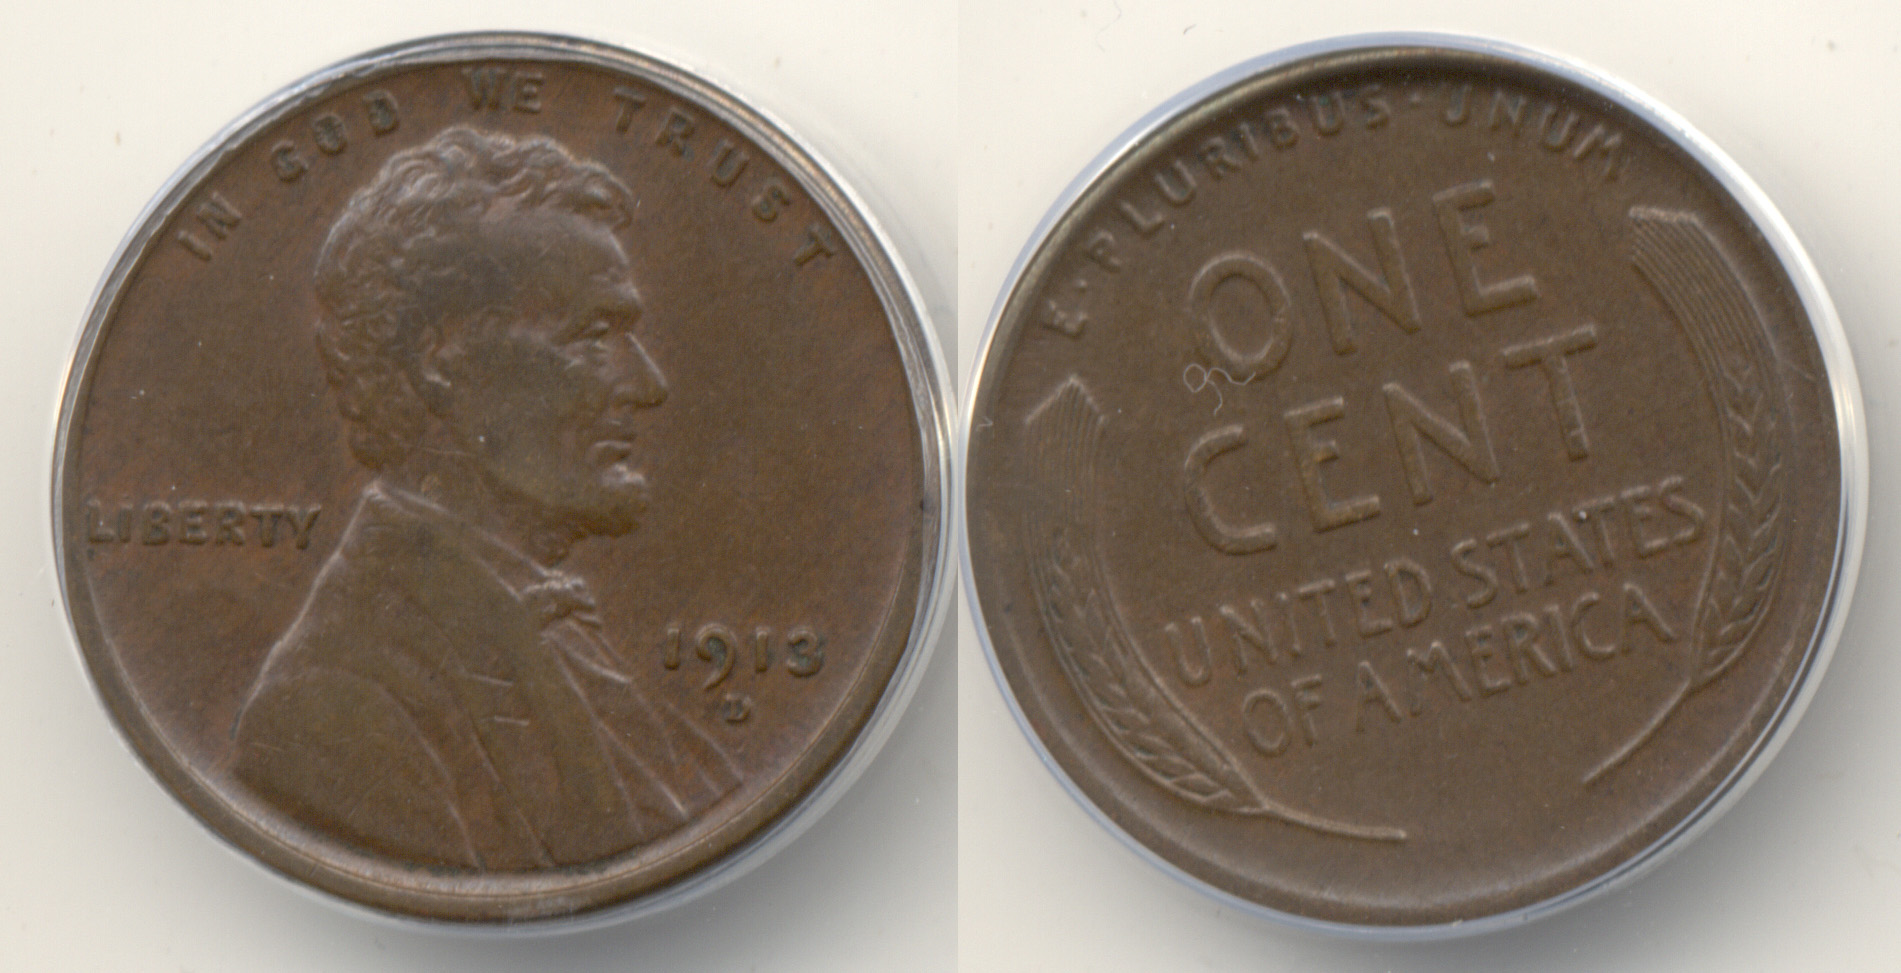 1913-D Lincoln Cent ANACS EF-40